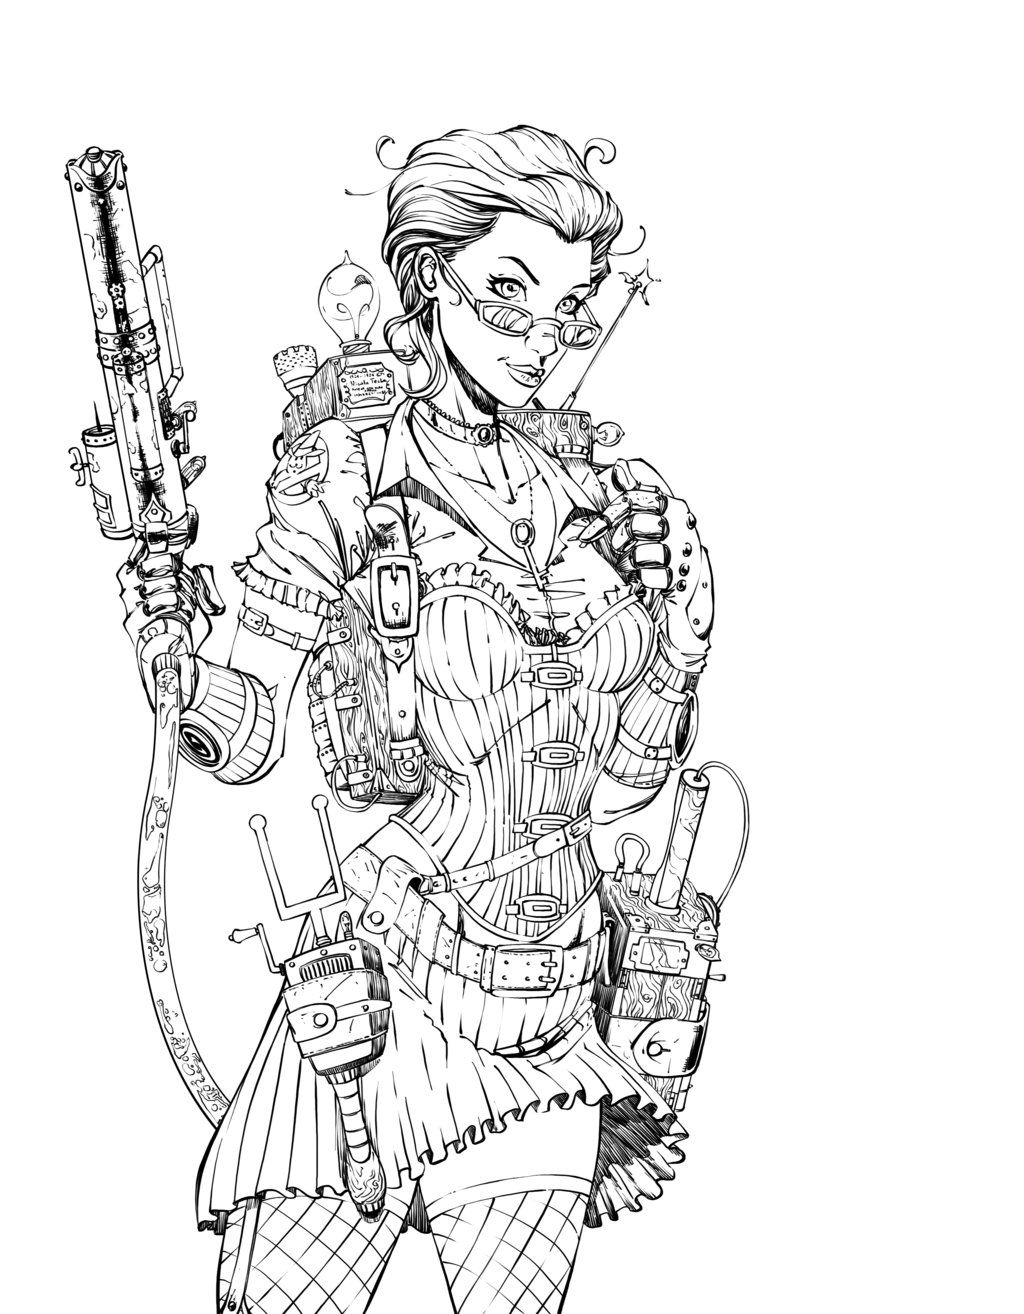 A Steampunk Version Of Janine Melnitz Of Ghostbusters Fame